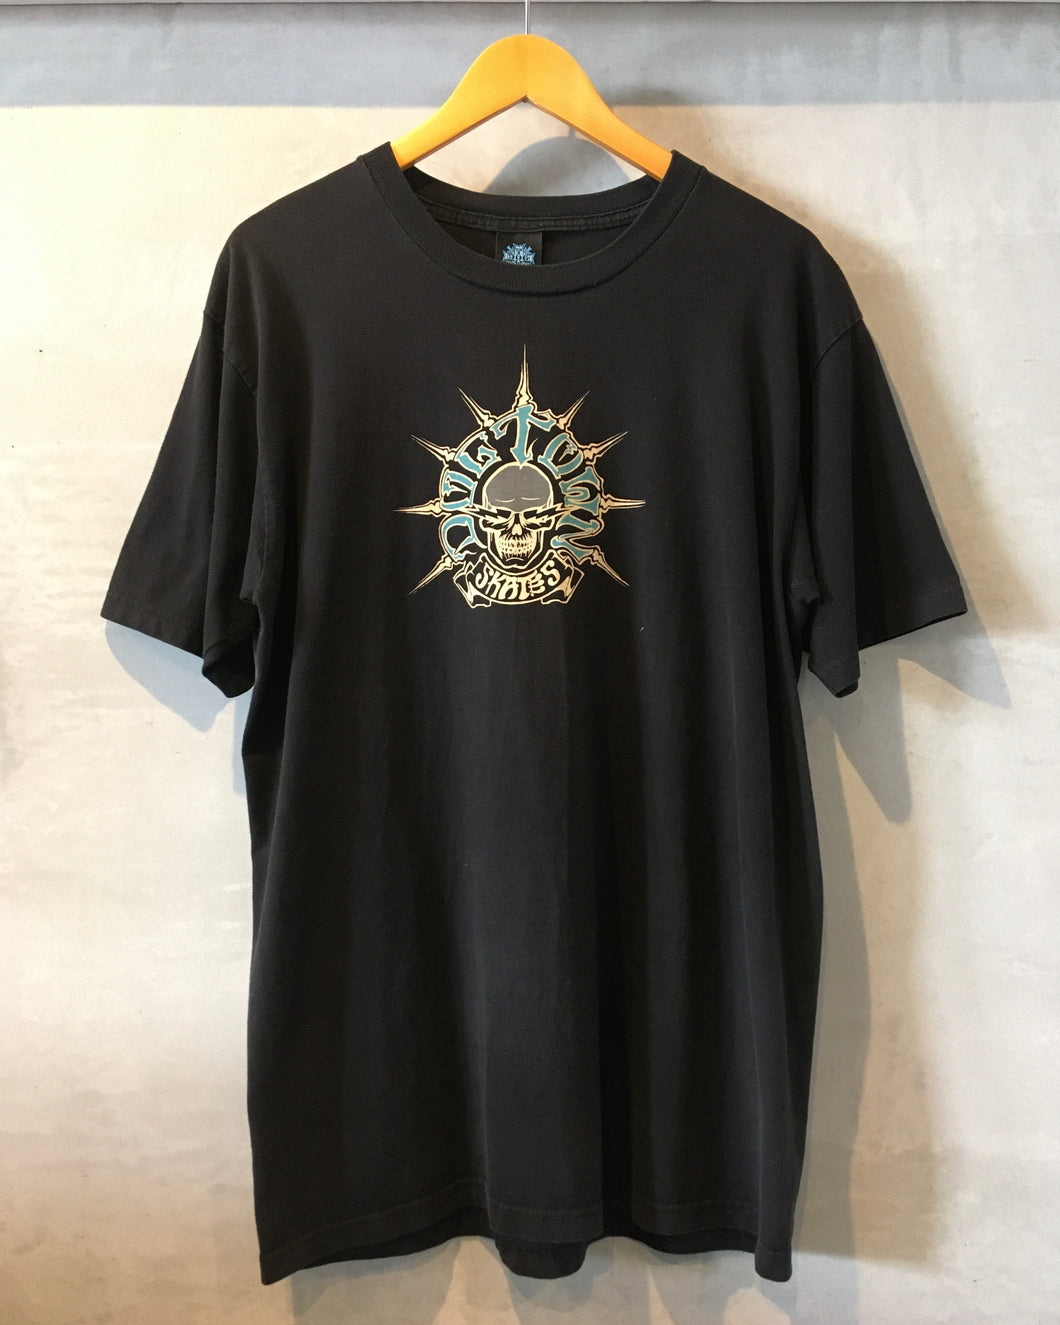 DOG TOWN -T-shirt-(size  L)